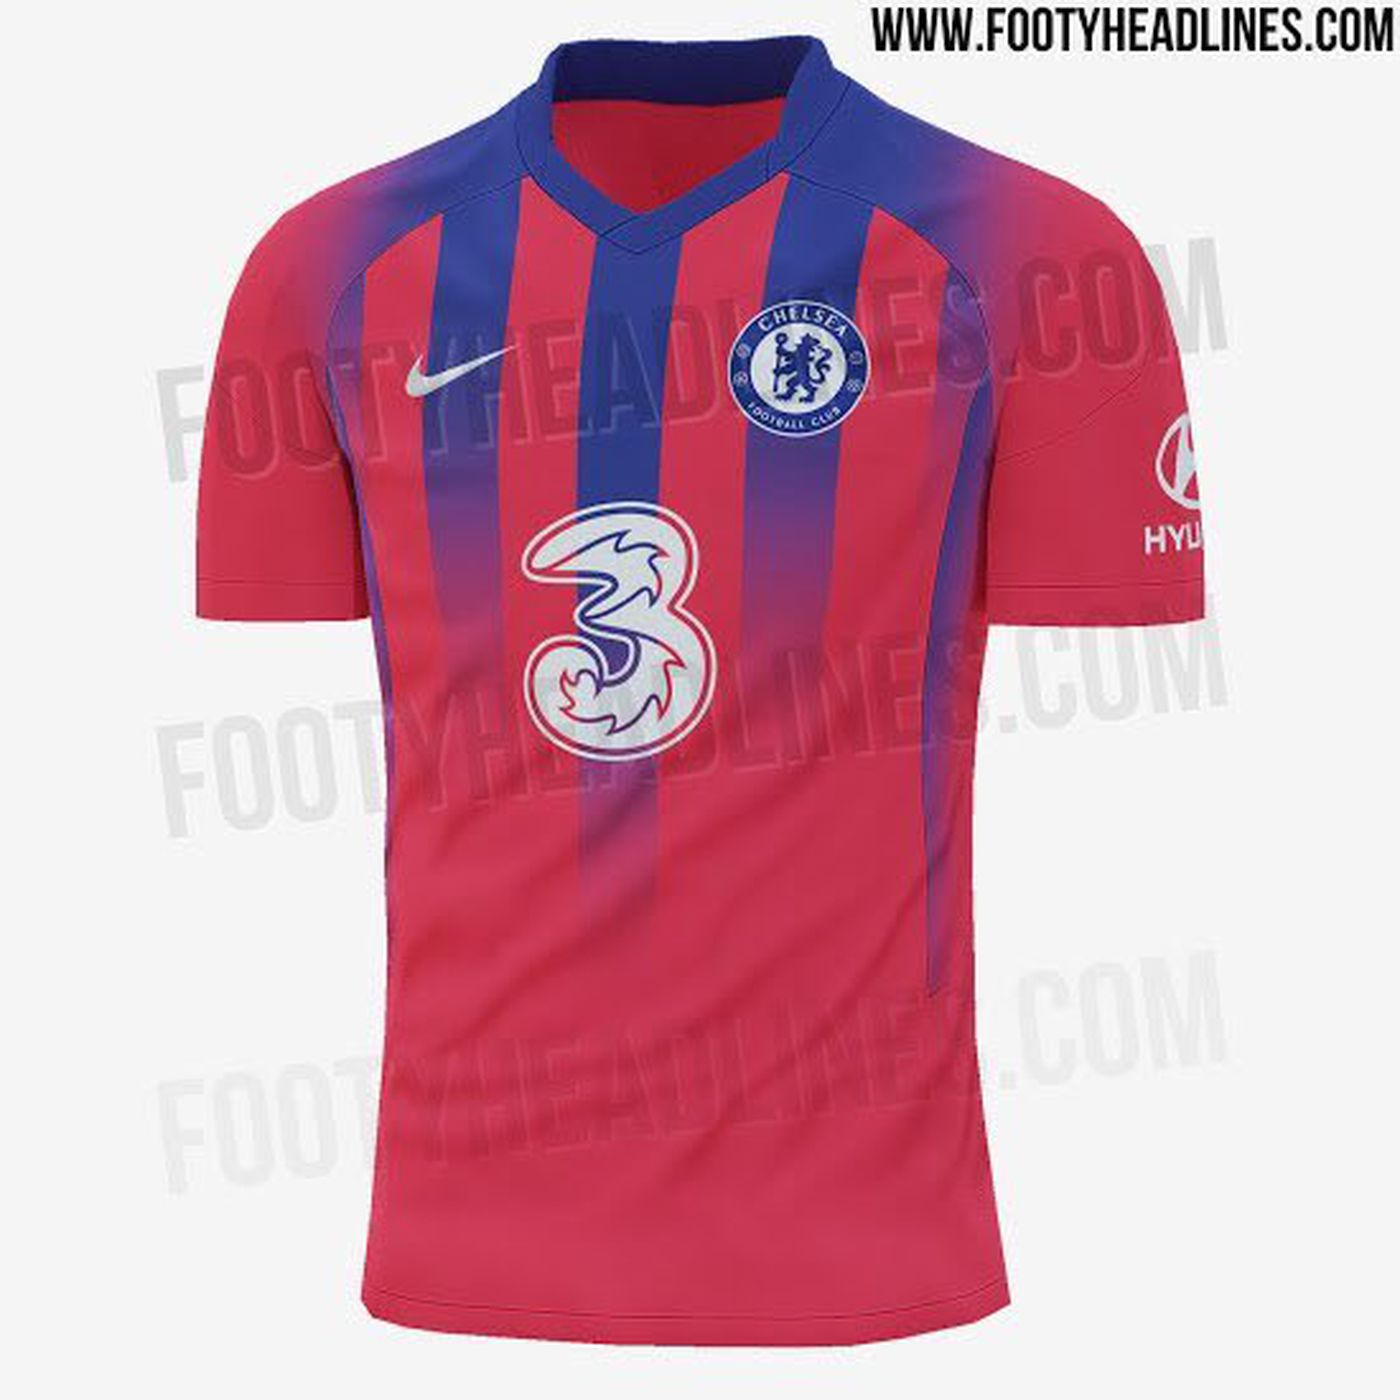 Crystal Palace Like 2020 21 Chelsea Third Kit Spotted In The Wild We Ain T Got No History